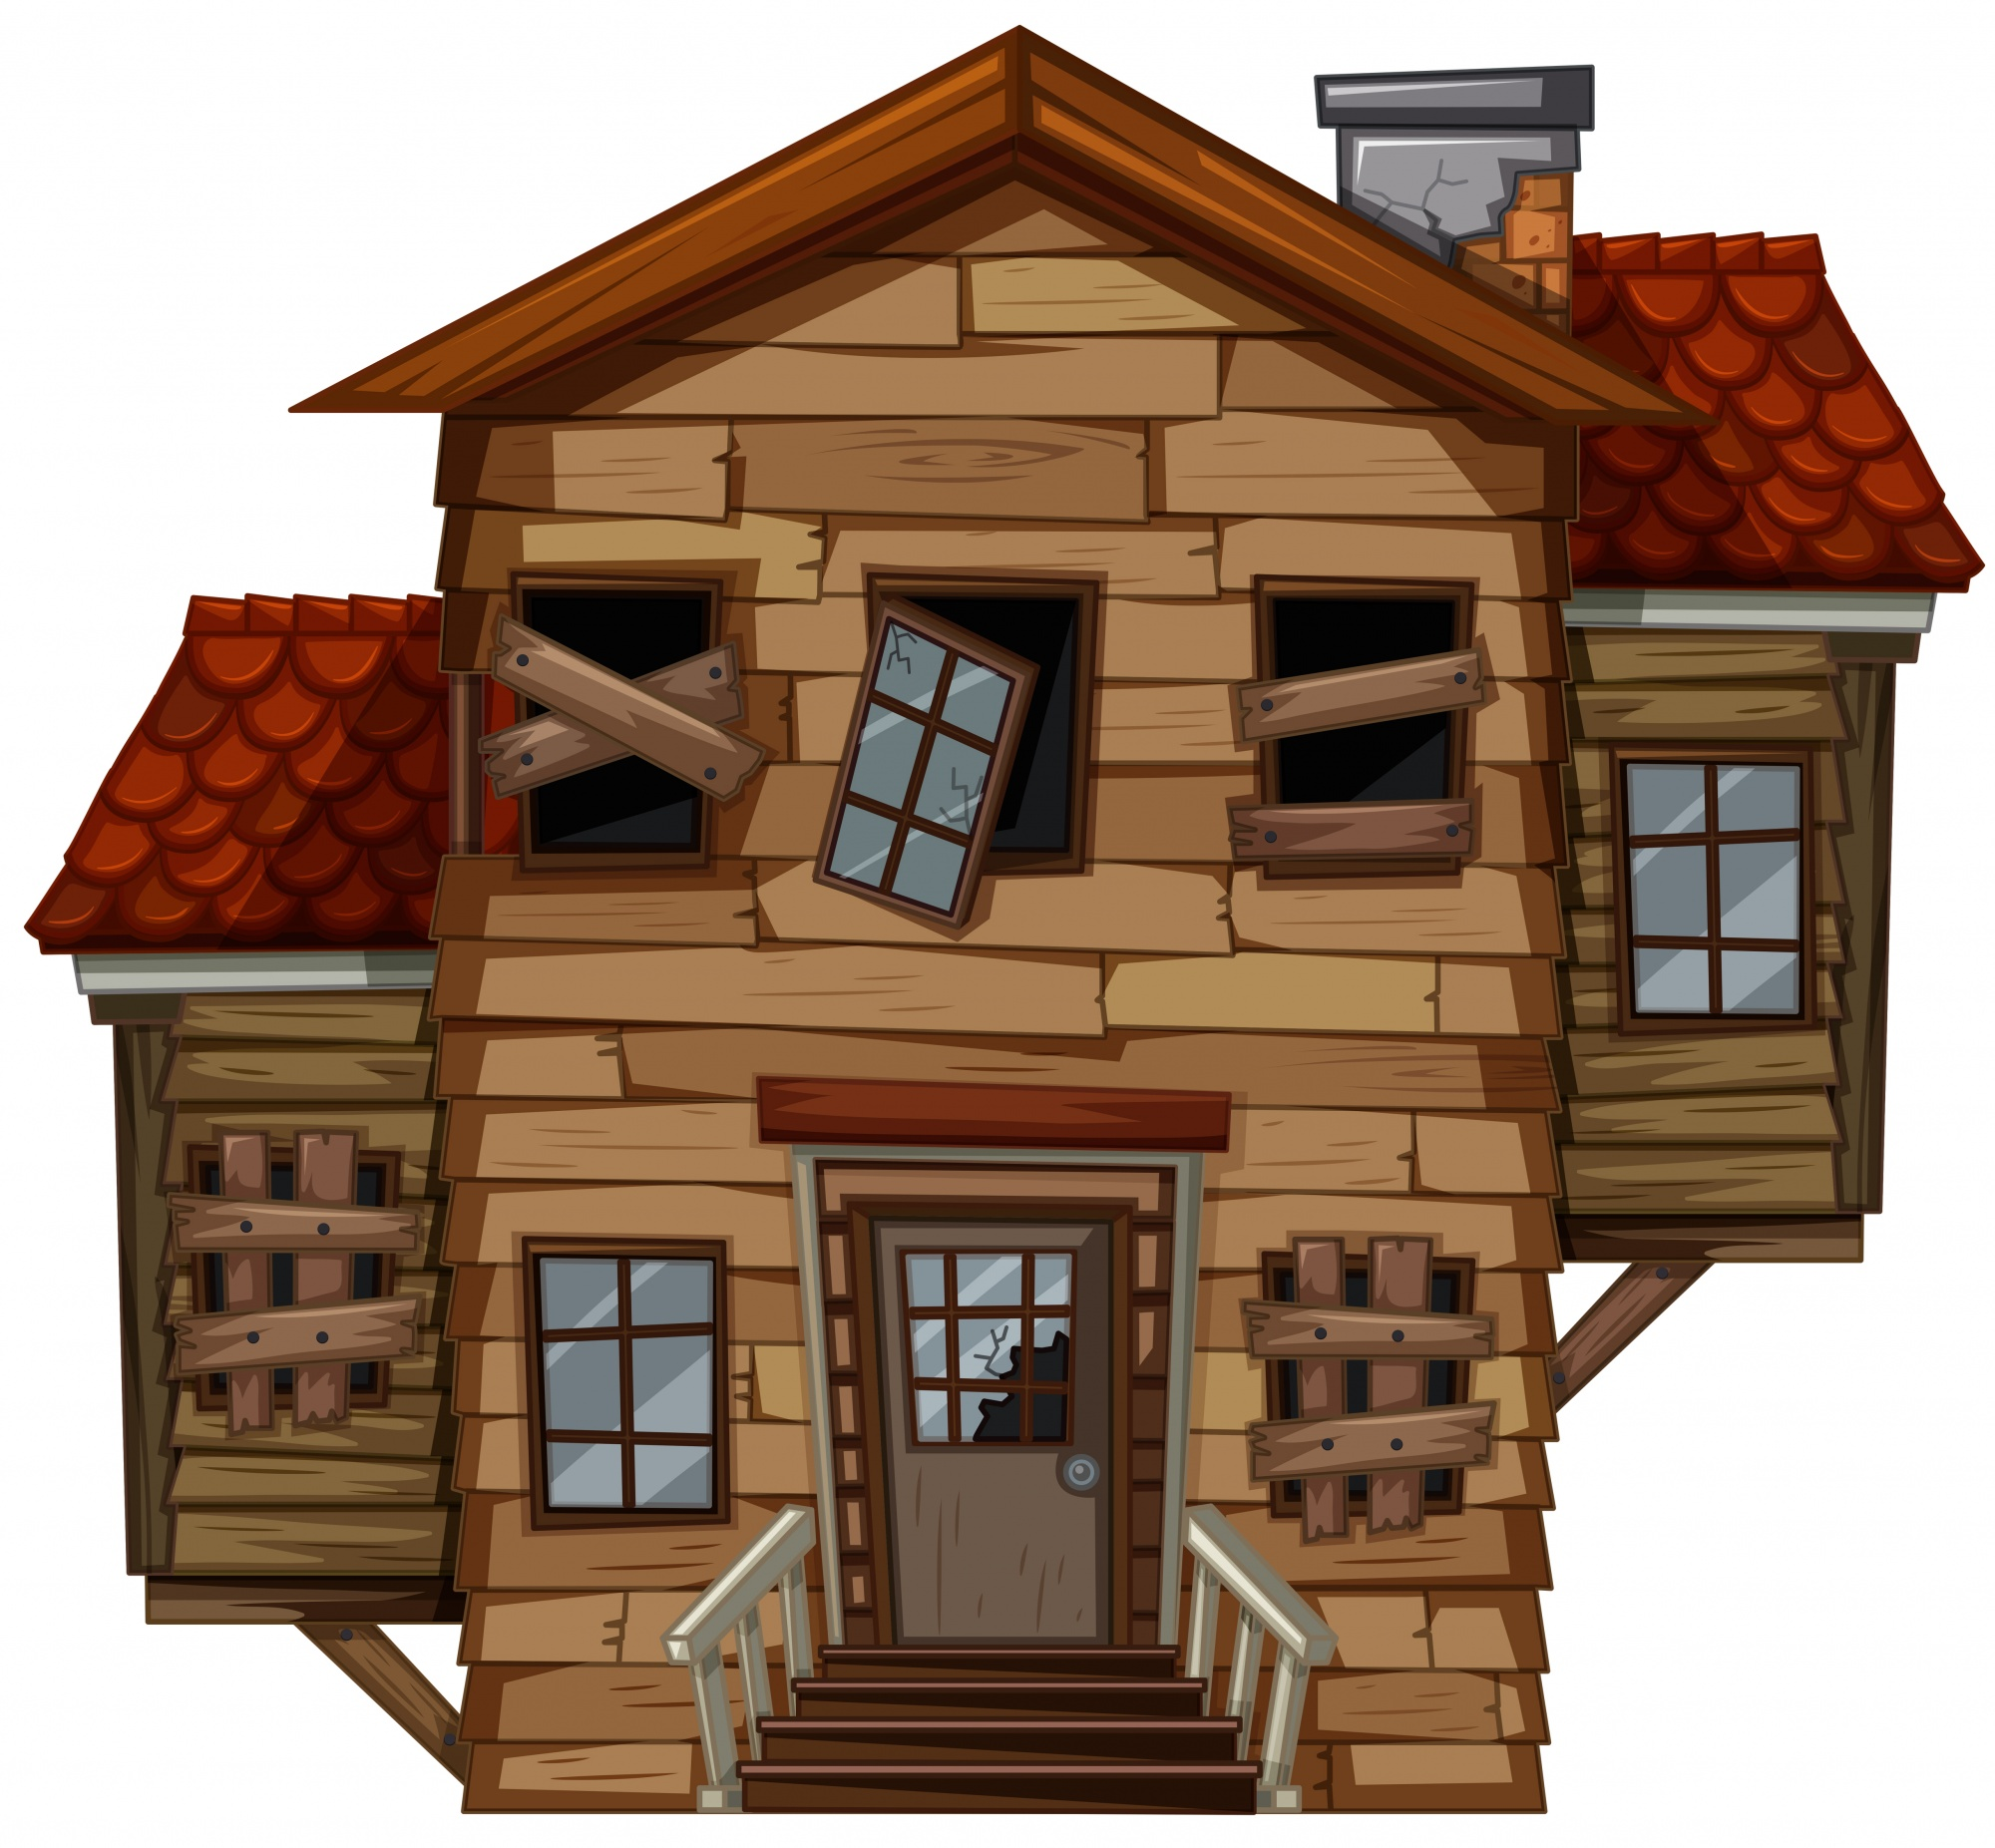 Wooden house with bad condition